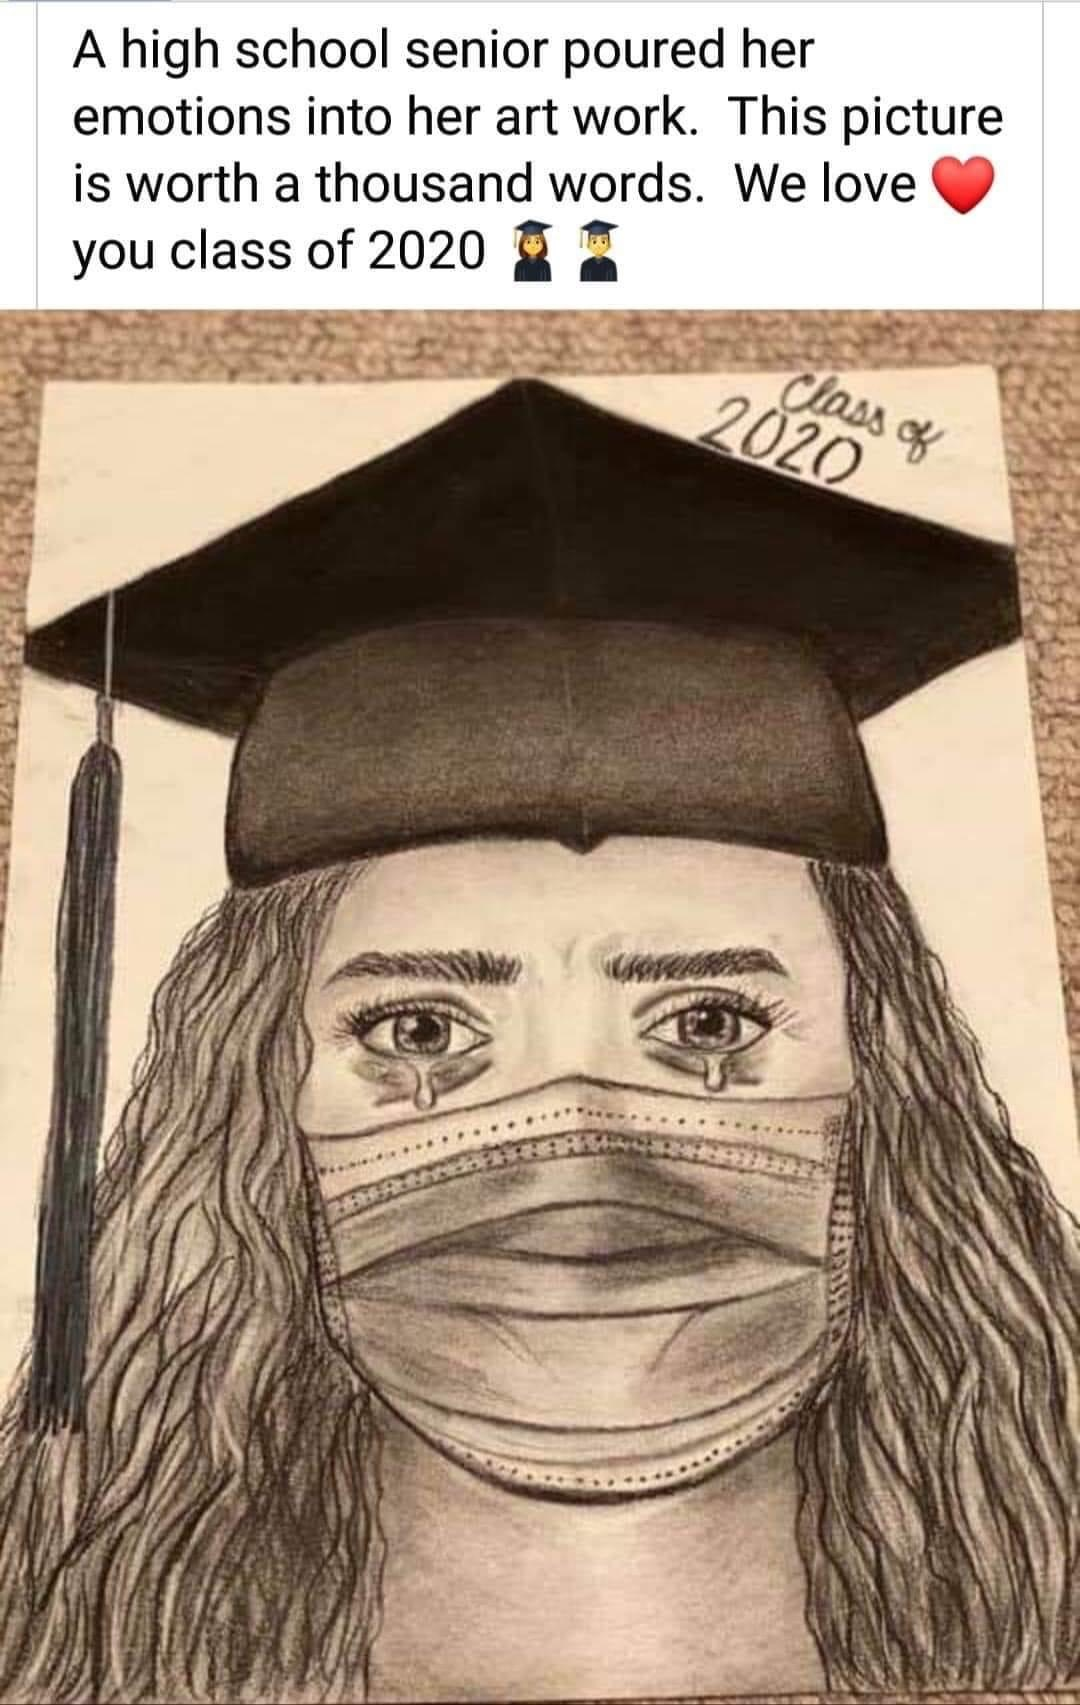 It's okay to grieve - graduate 2020